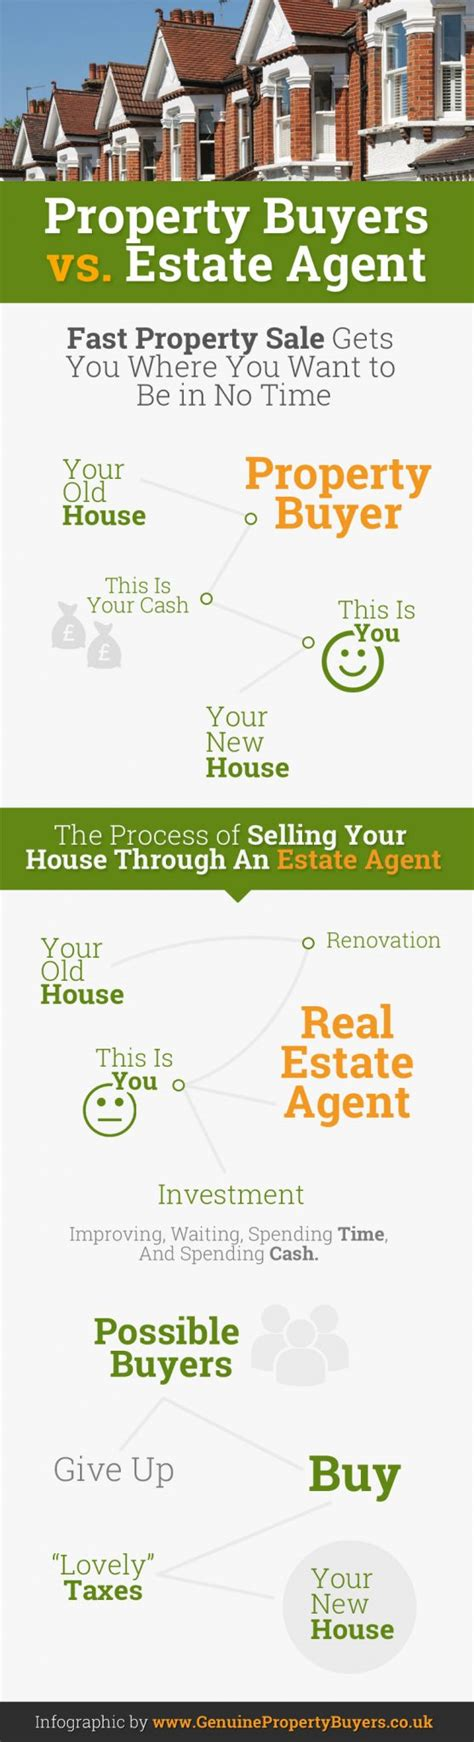 house buying agent property buyers vs estate agent infographics graphics design data visualization